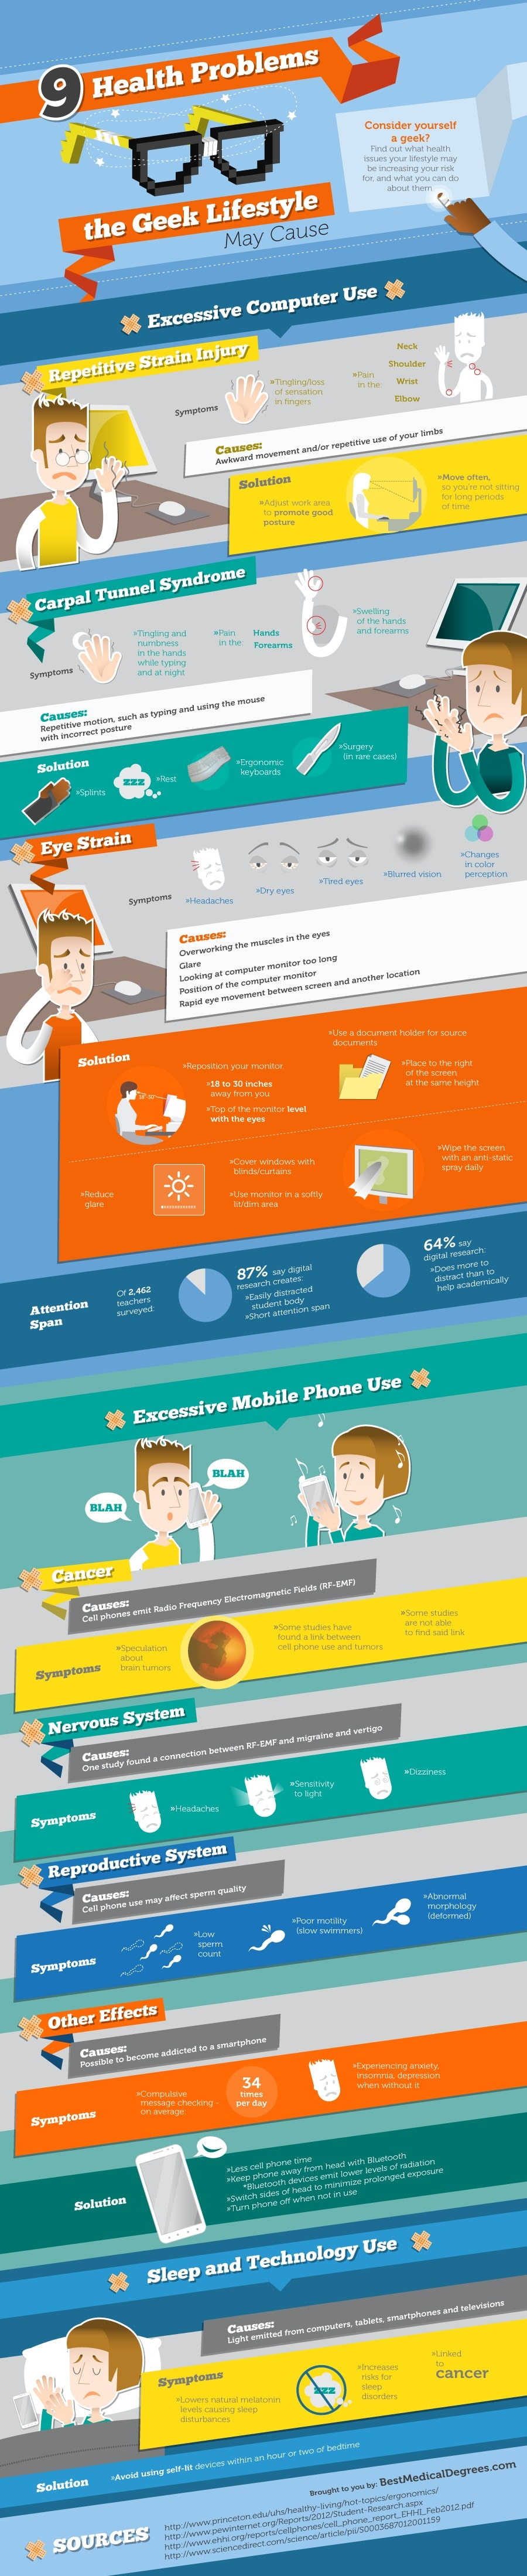 Health Problems Caused by Online Geek Lifestyle Infographic